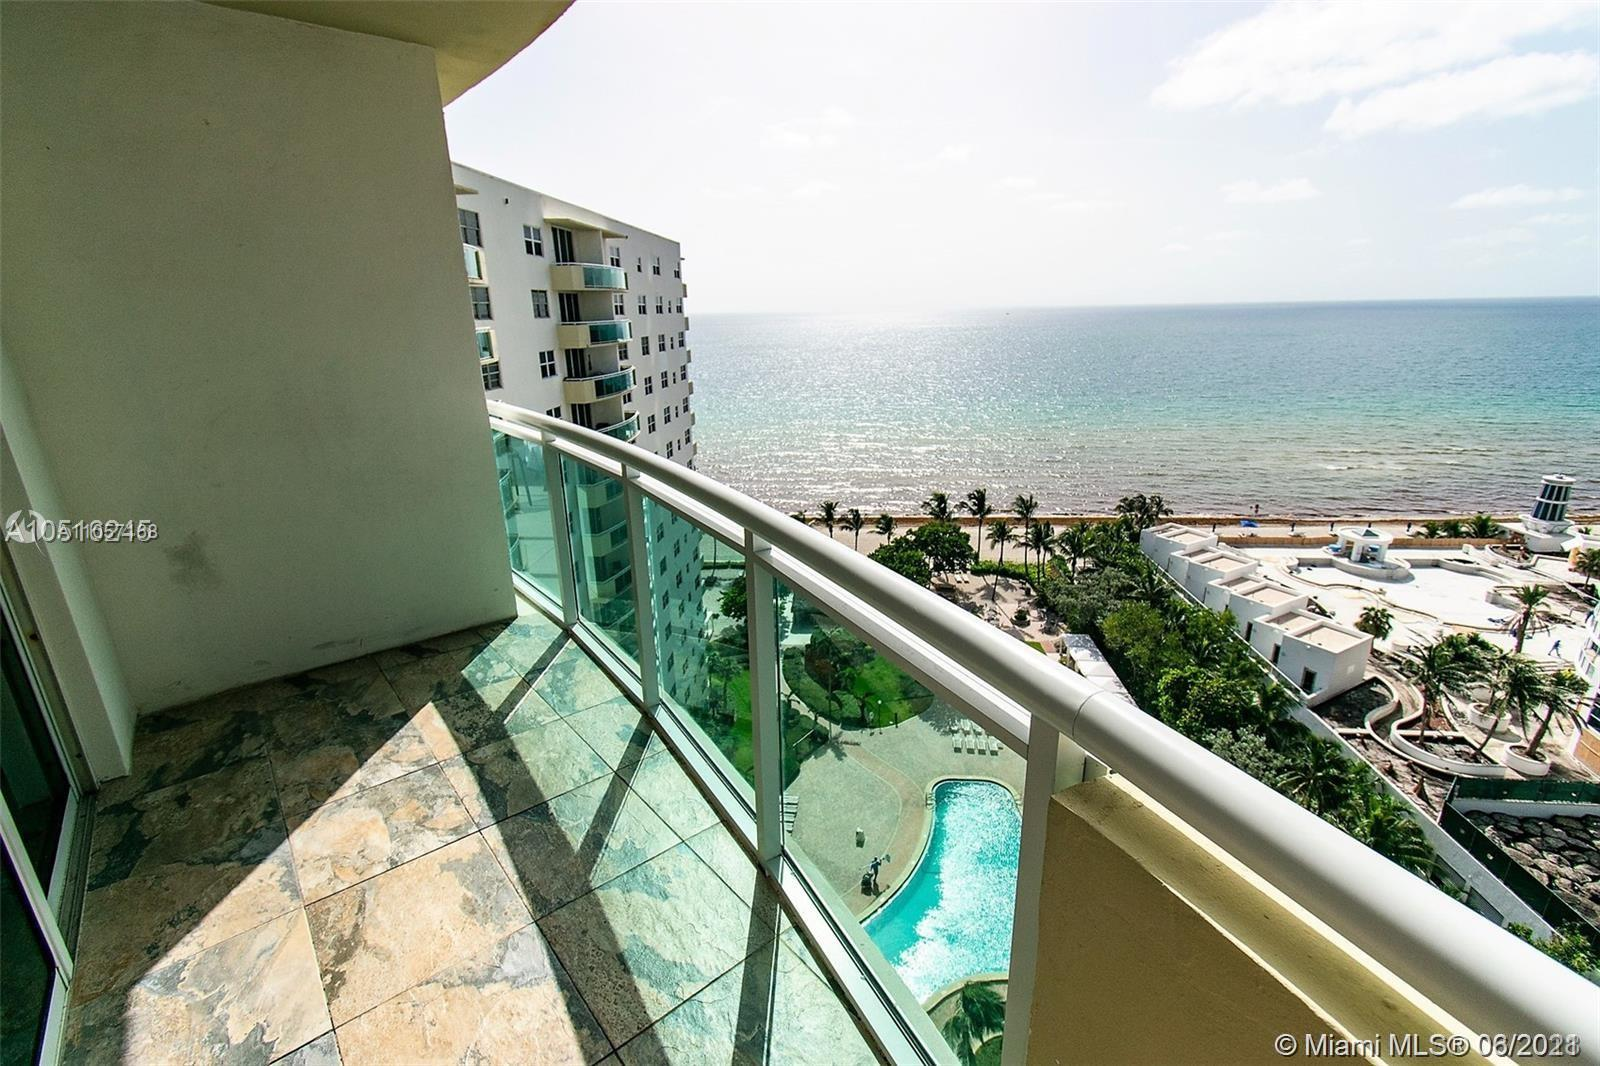 BEAUTIFUL OCEANFRONT  2 BEDROOM 2 BATH UPGRADED CONDO WITH DIRECT OCEAN VIEWS. NEWER REFRIGERATOR AN